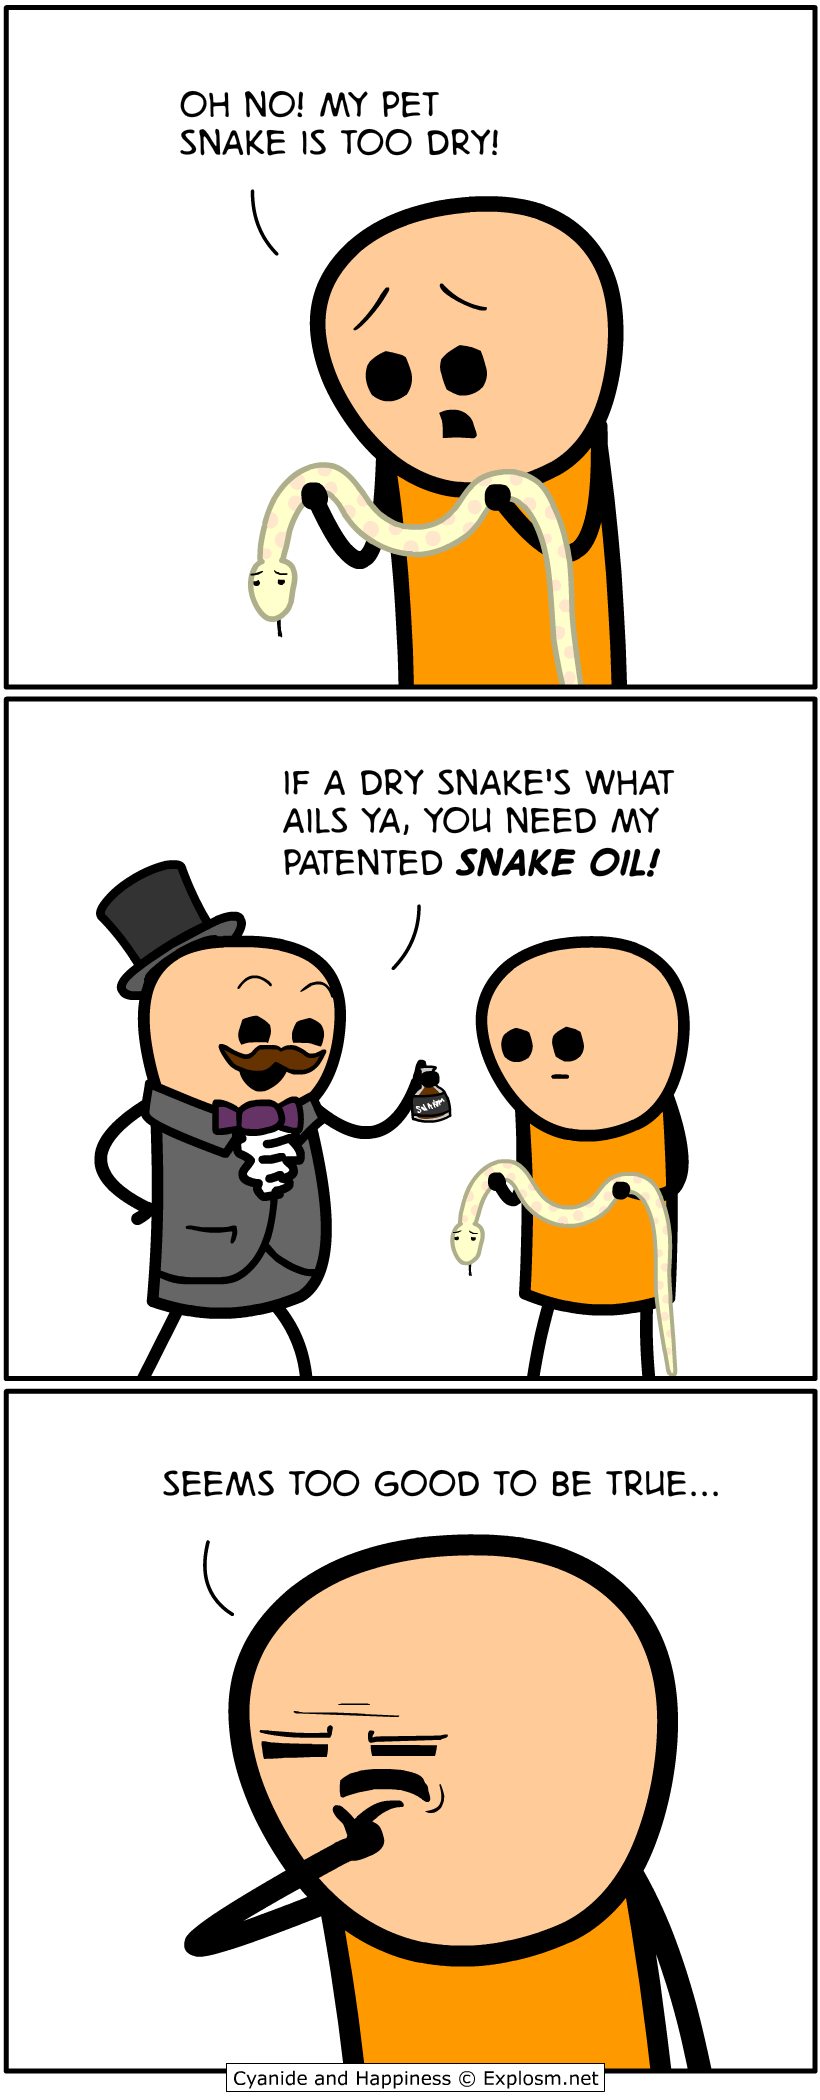 http://files.explosm.net/comics/Rob/dry-snake-2.png